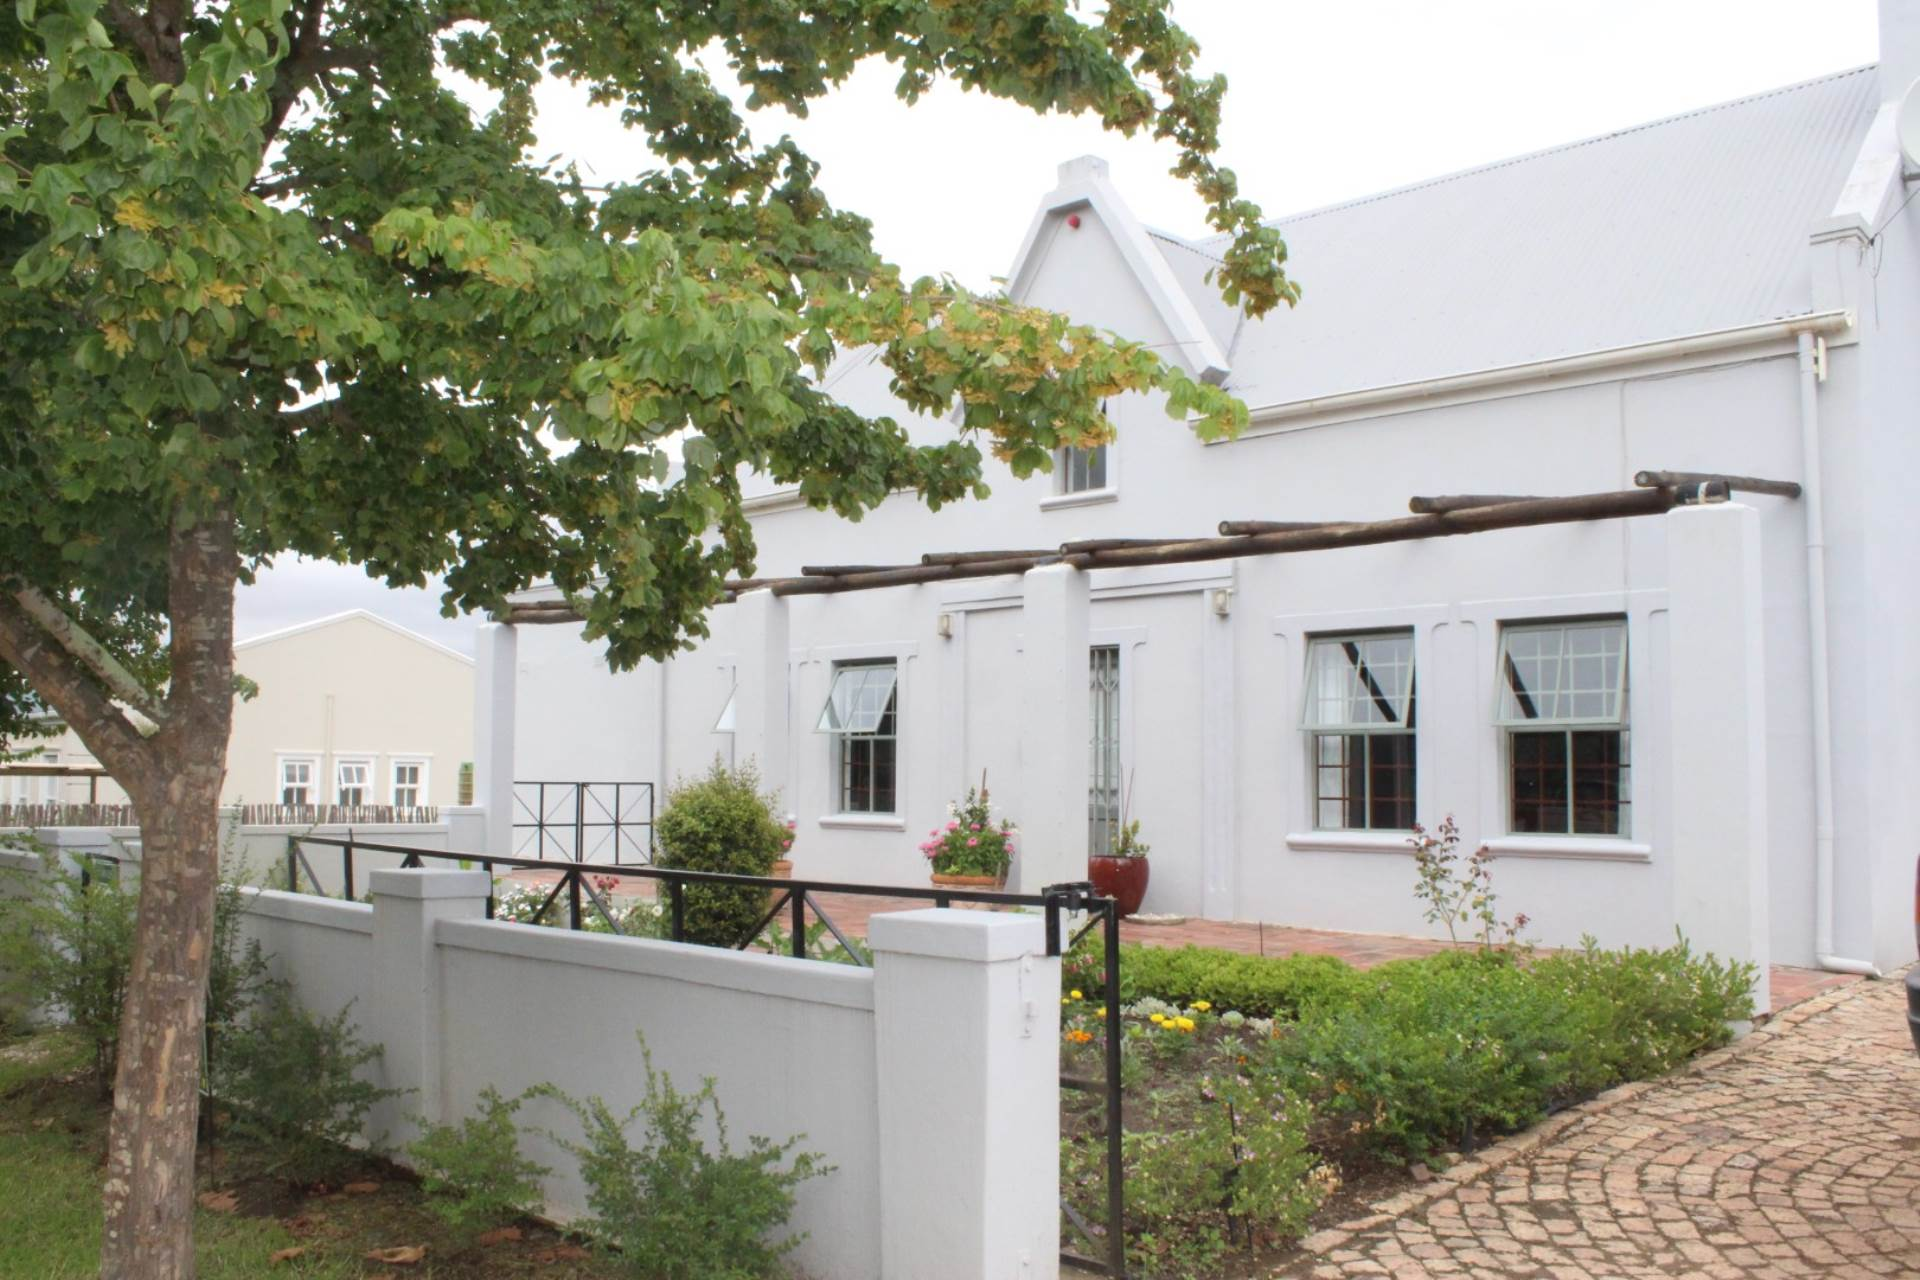 4 BedroomHouse For Sale In Greyton